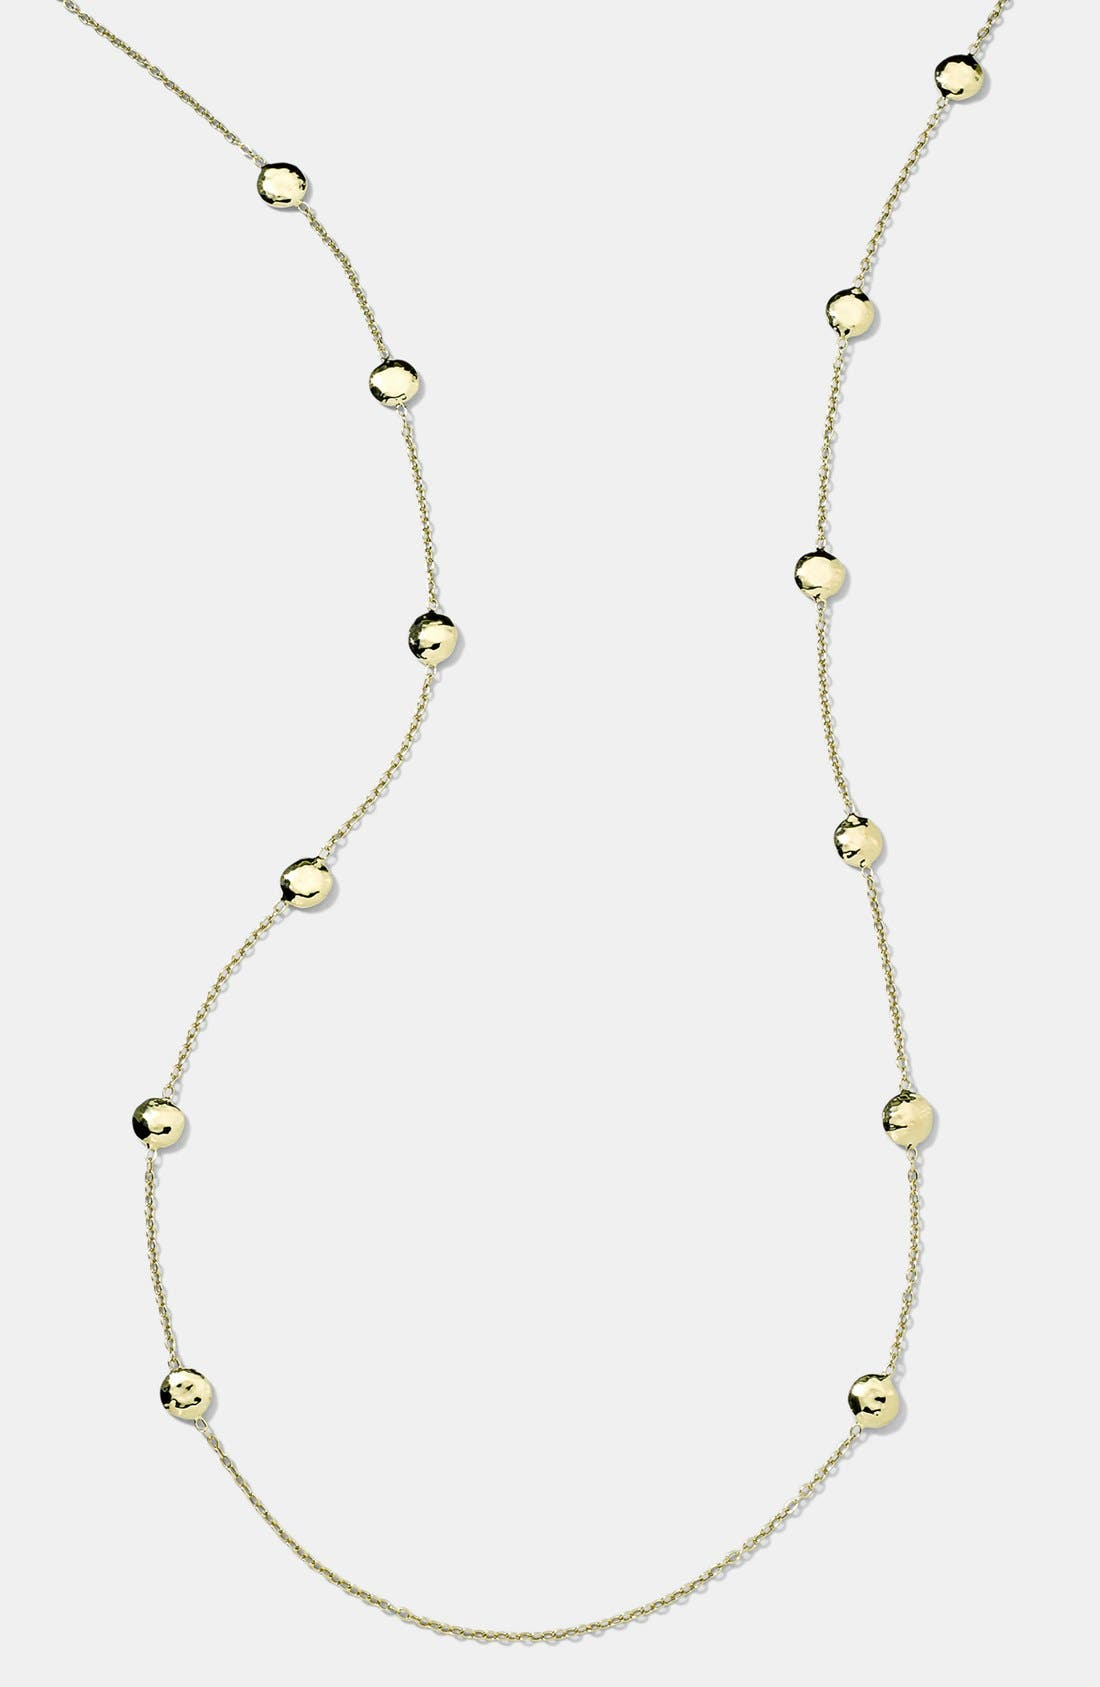 Alternate Image 1 Selected - Ippolita 'Glamazon - Pinball' 18k Gold Long Station Necklace